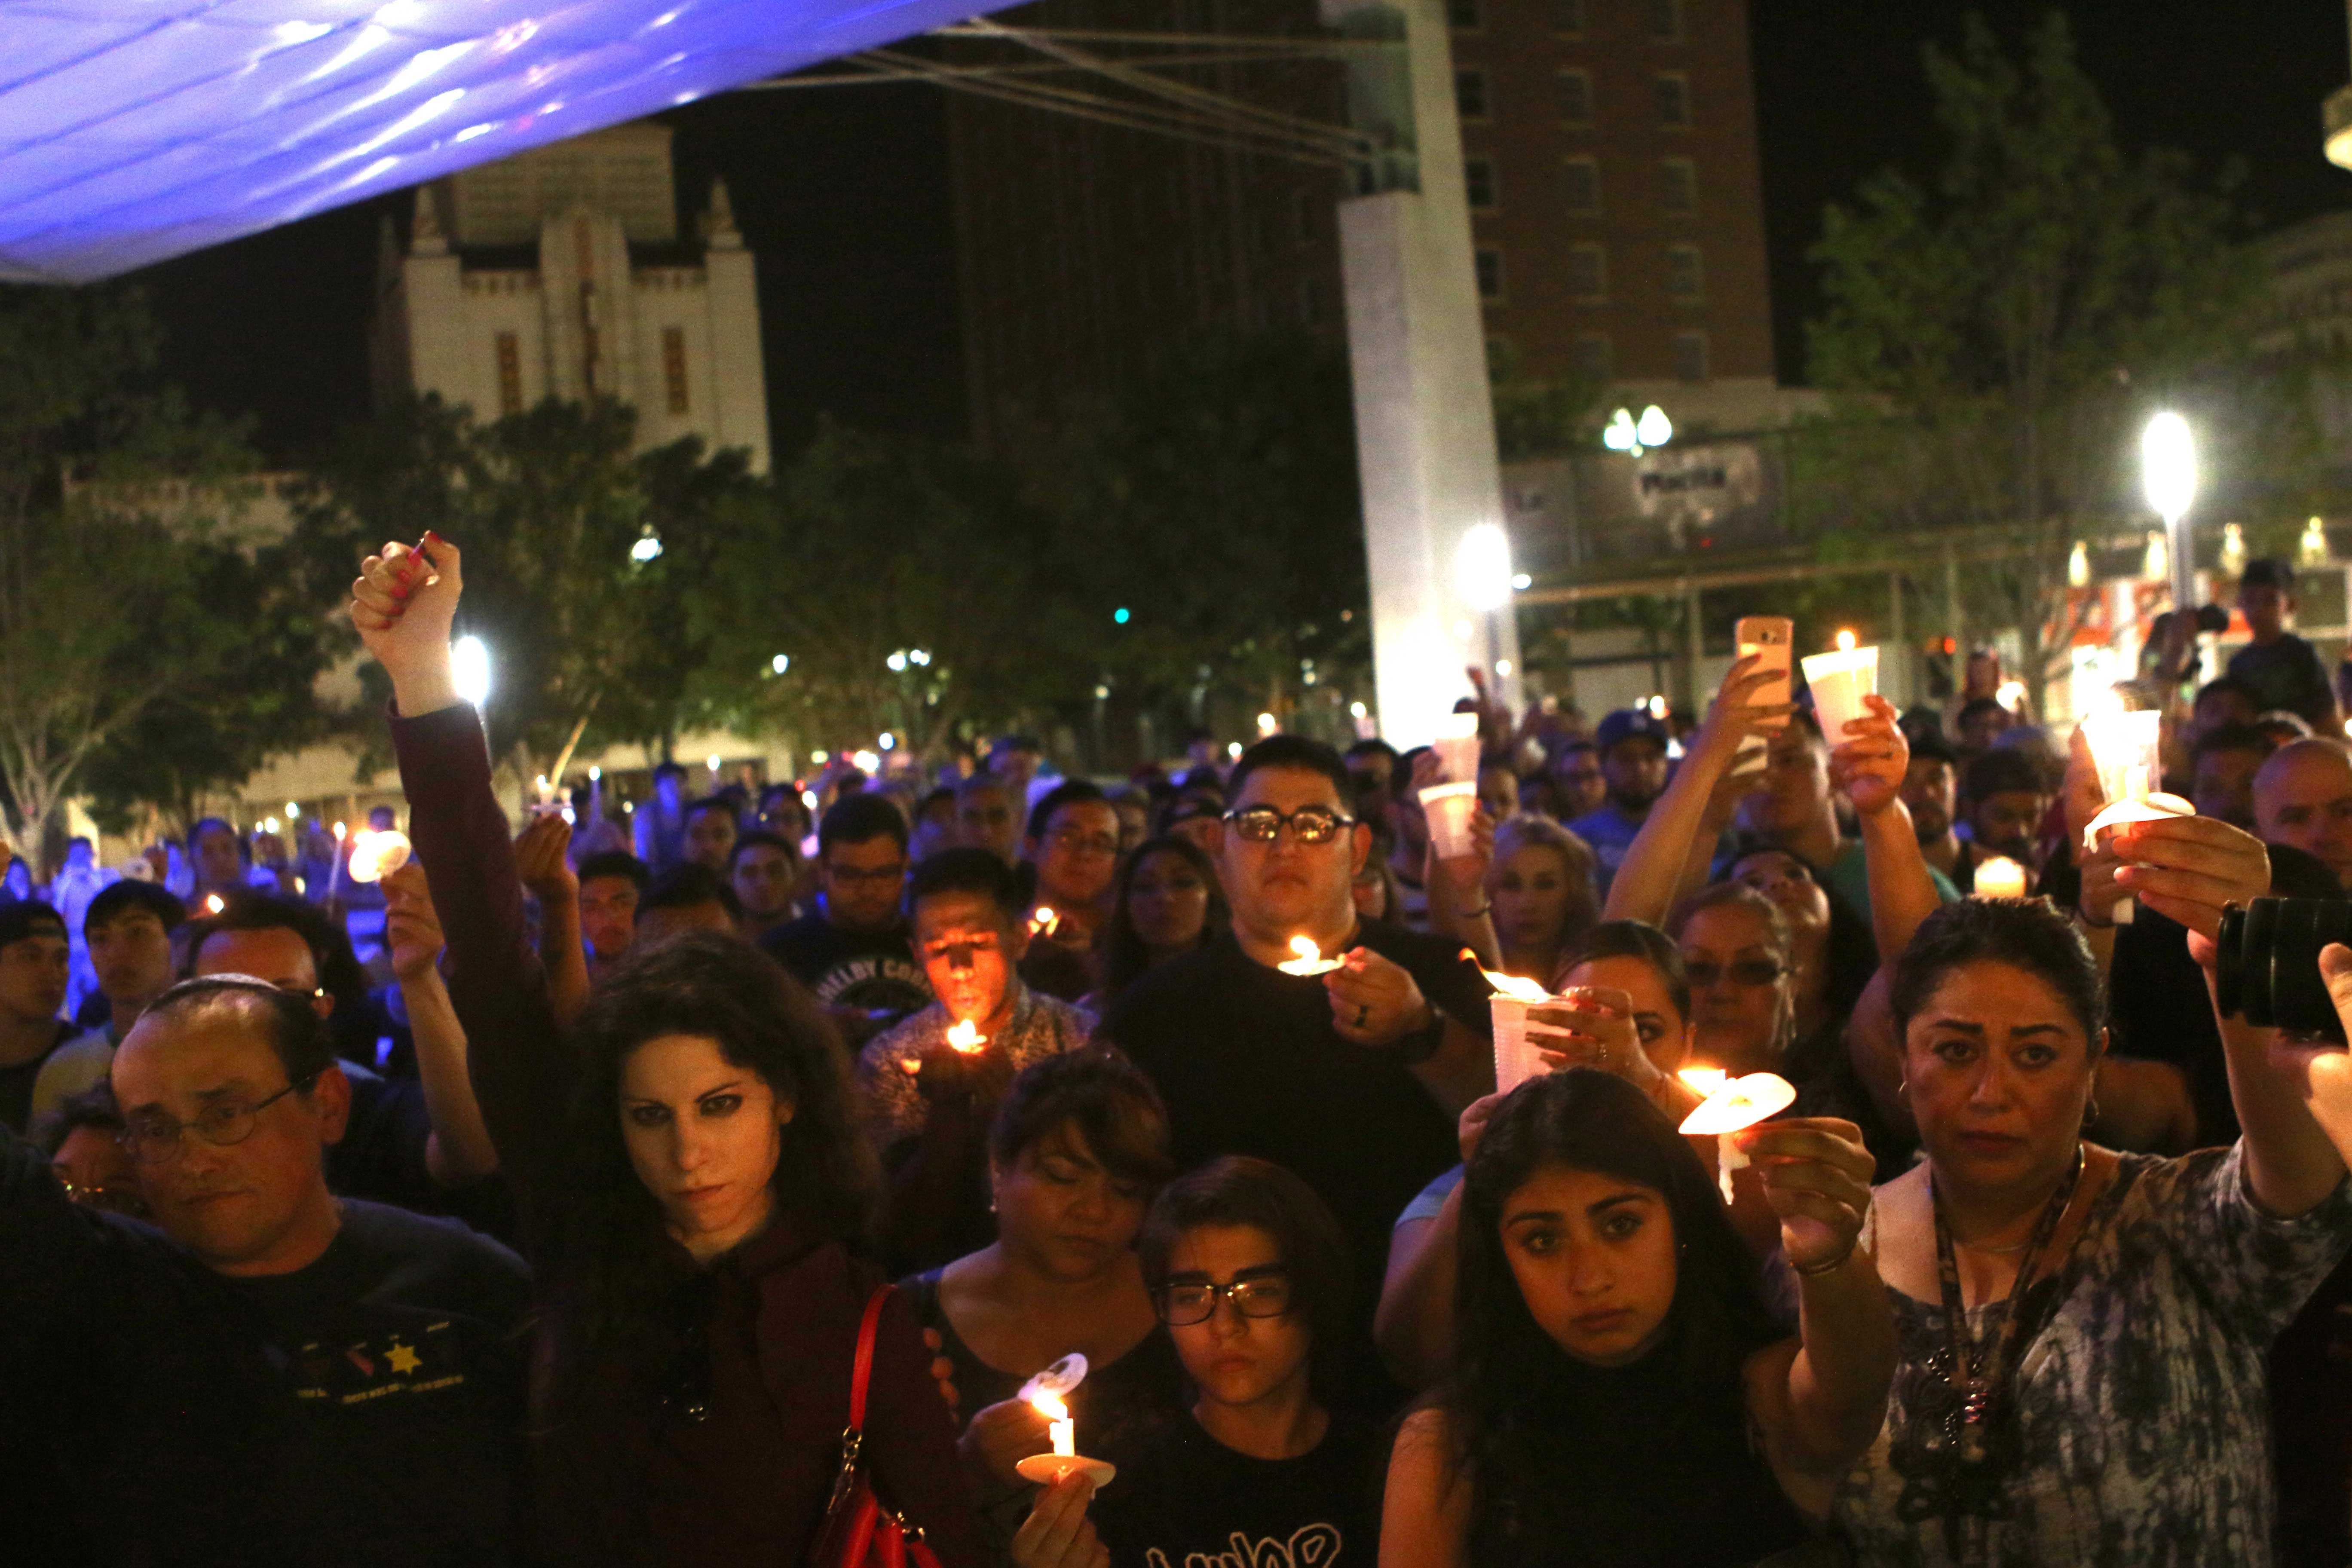 El Pasoans gather around San Jacinto Plaza to mourn the 50 lives lost in the Orlando night club shooting on Sun. June 12.